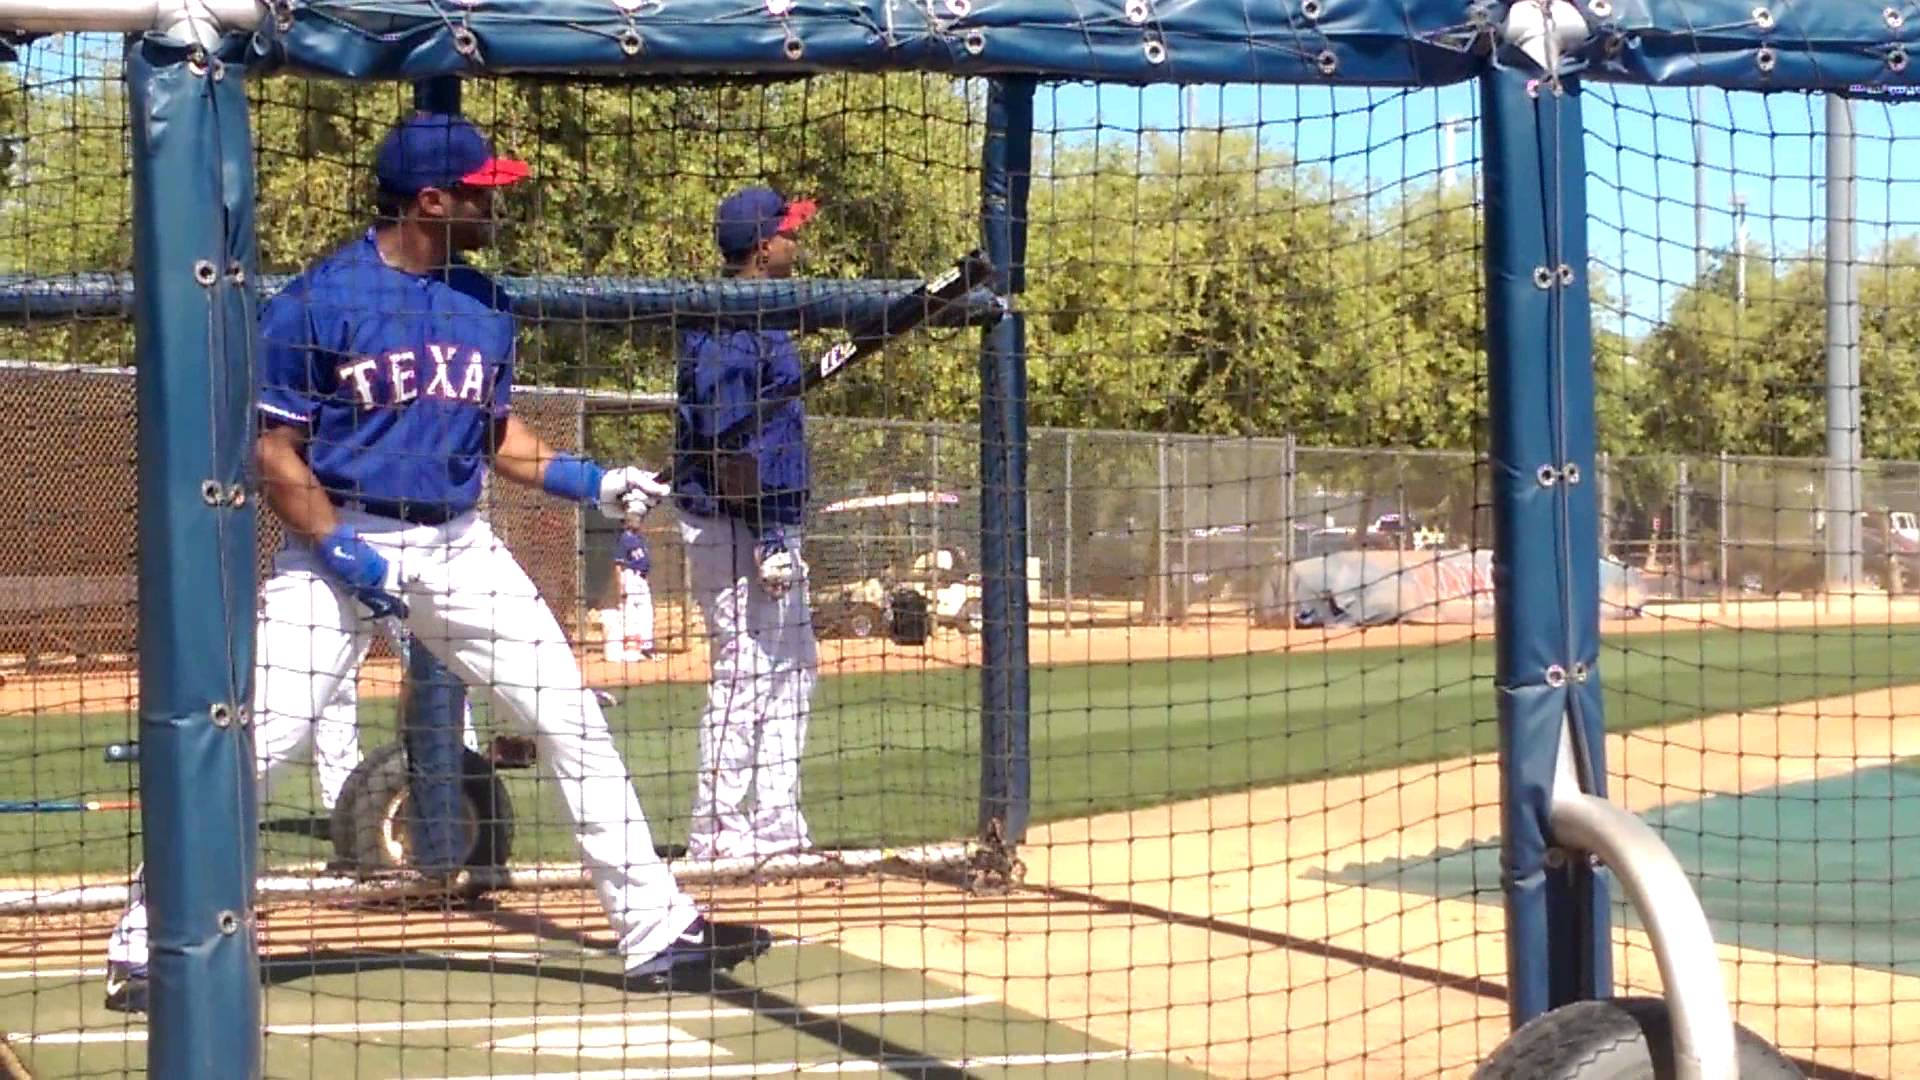 Seahawks QB Russell Wilson takes BP with the Texas Rangers